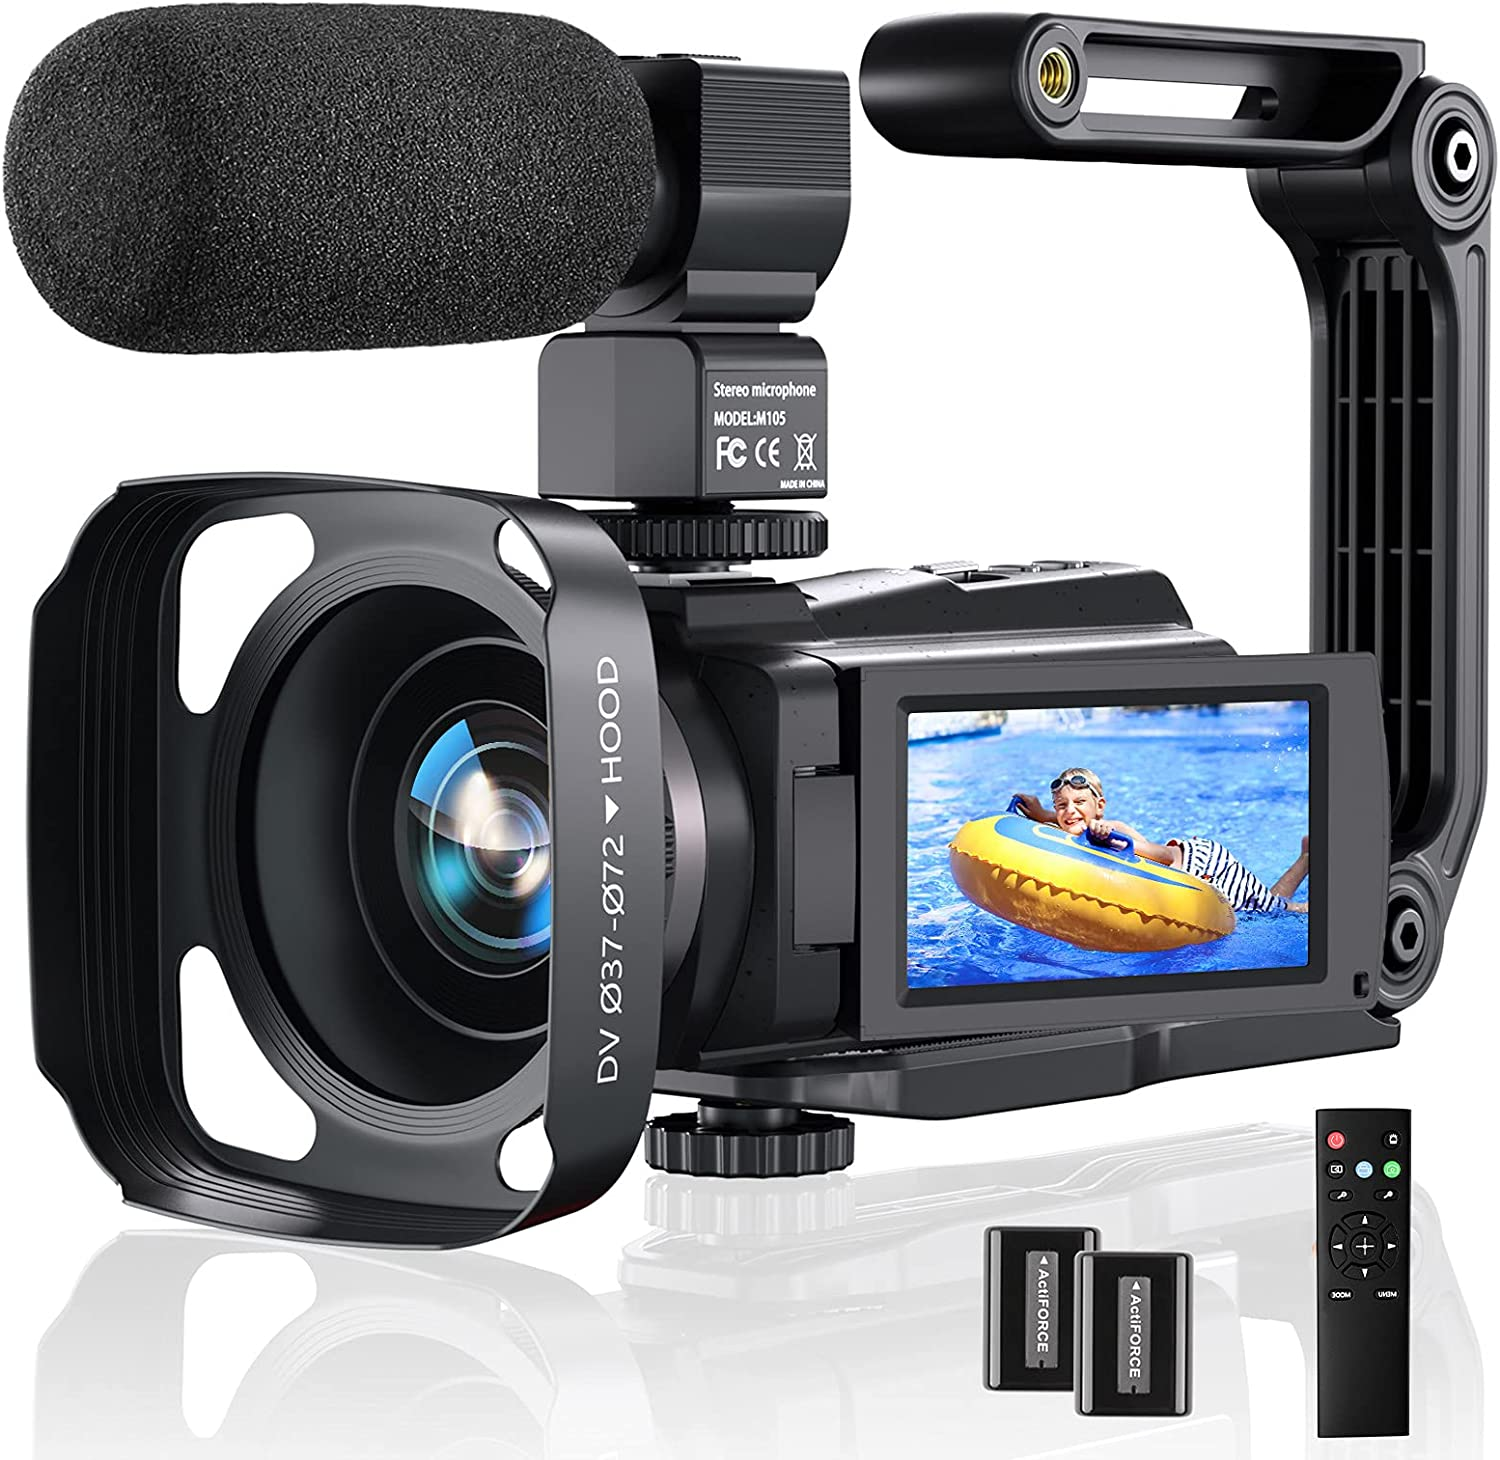 4K Video Camera Camcorder, 48MP 60FPS YouTube Camera WiFi IR Night Version Vlogging Camera 3.0 Inch Touch Screen 16X Zoom Digital Video Camera Recorder with Microphone, 2.4G Remote, Stabilizer, Hood